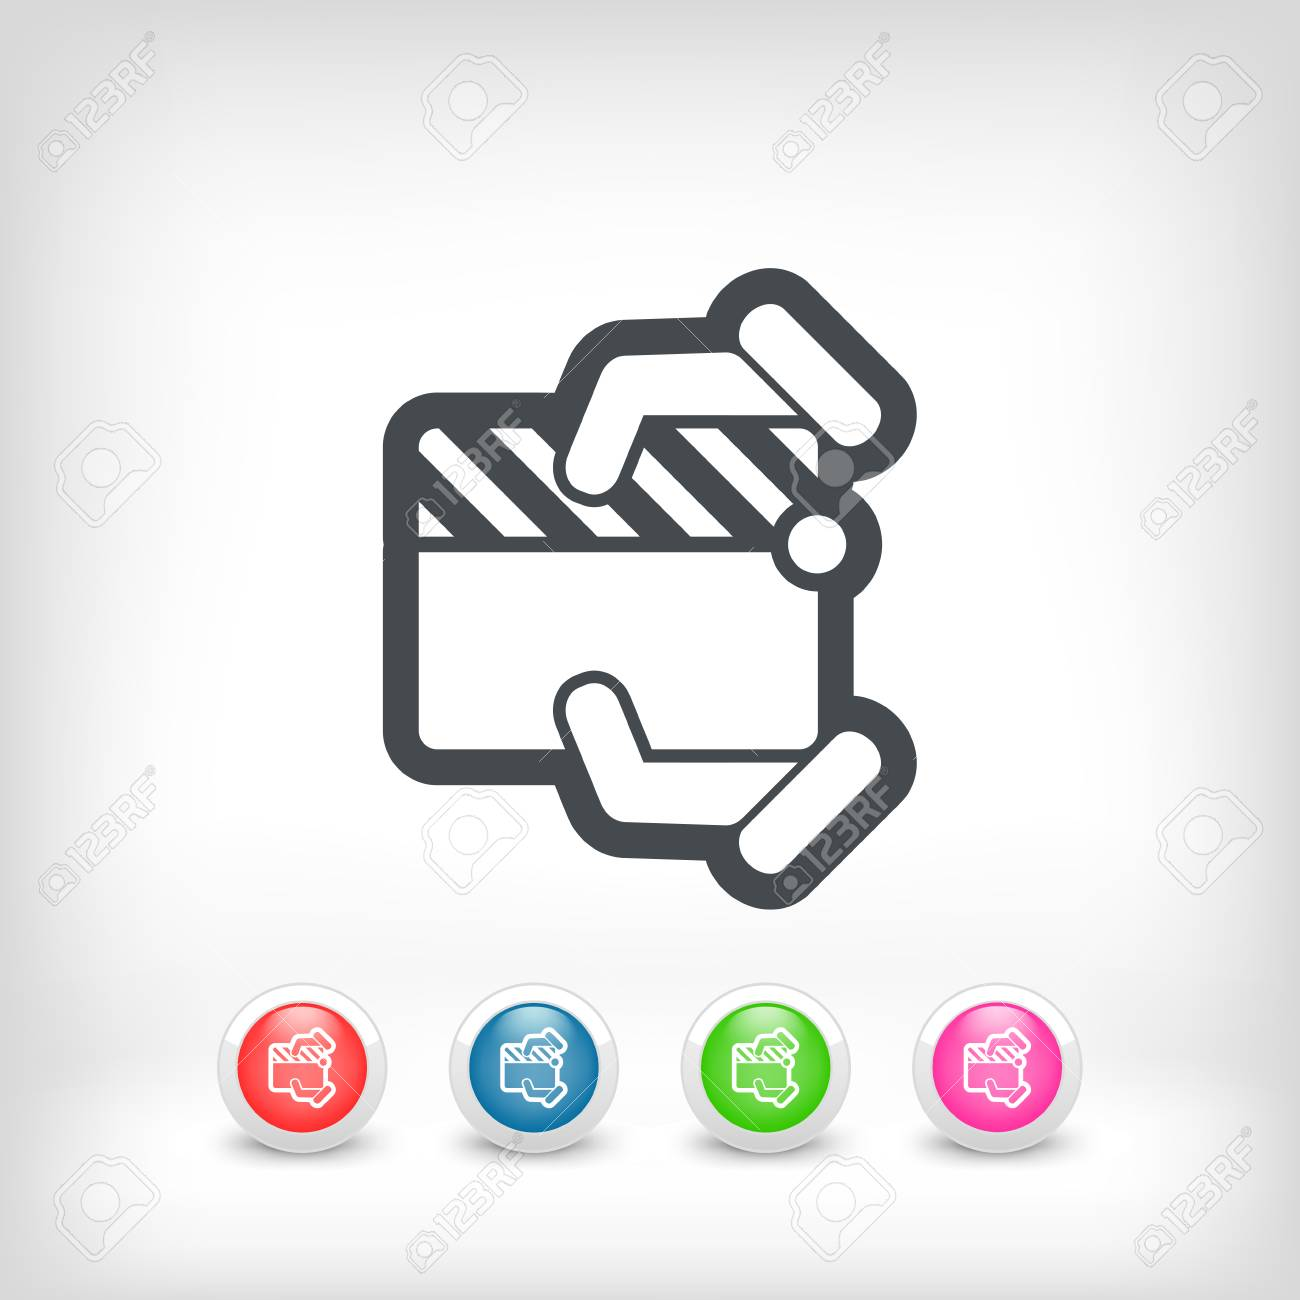 Clapboard concept icon Stock Vector - 28202163